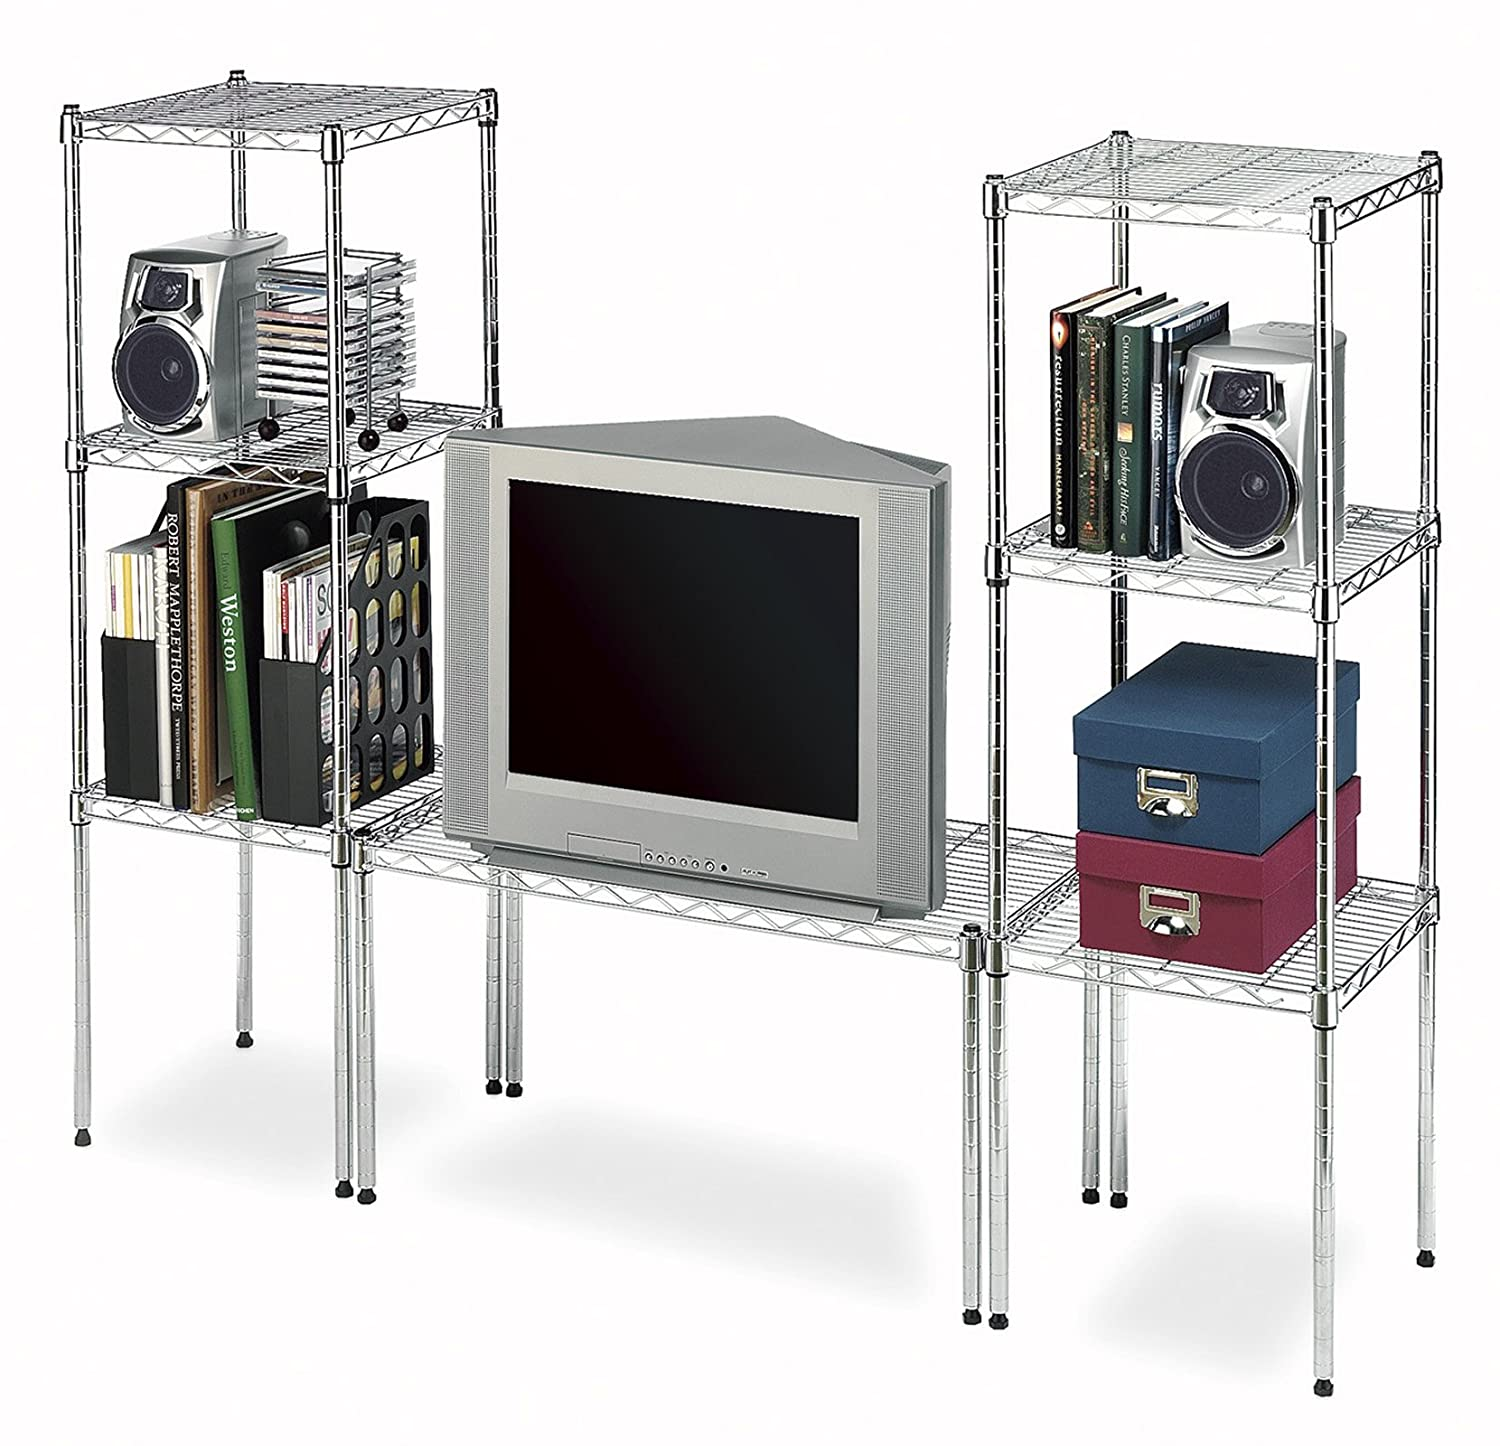 Amazon.com: Whitmor Supreme Wide Stacking Shelf, Chrome: Home ...